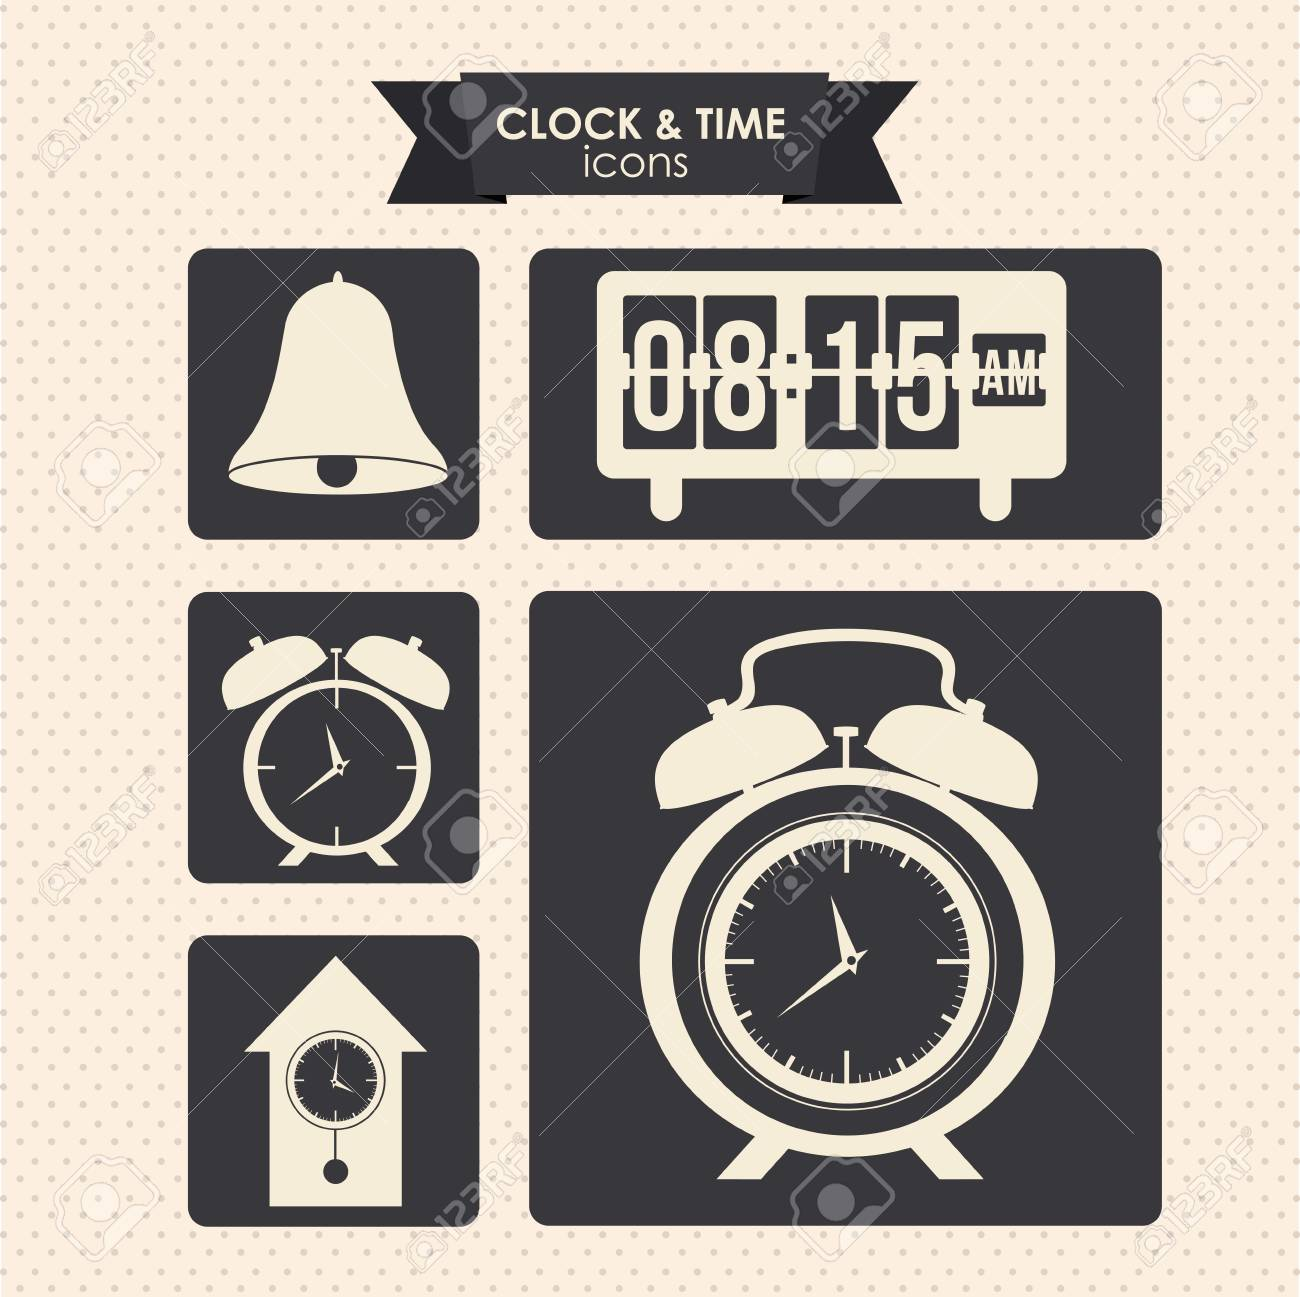 clock and time icons over dotted background vector illustration Stock Vector - 20192548